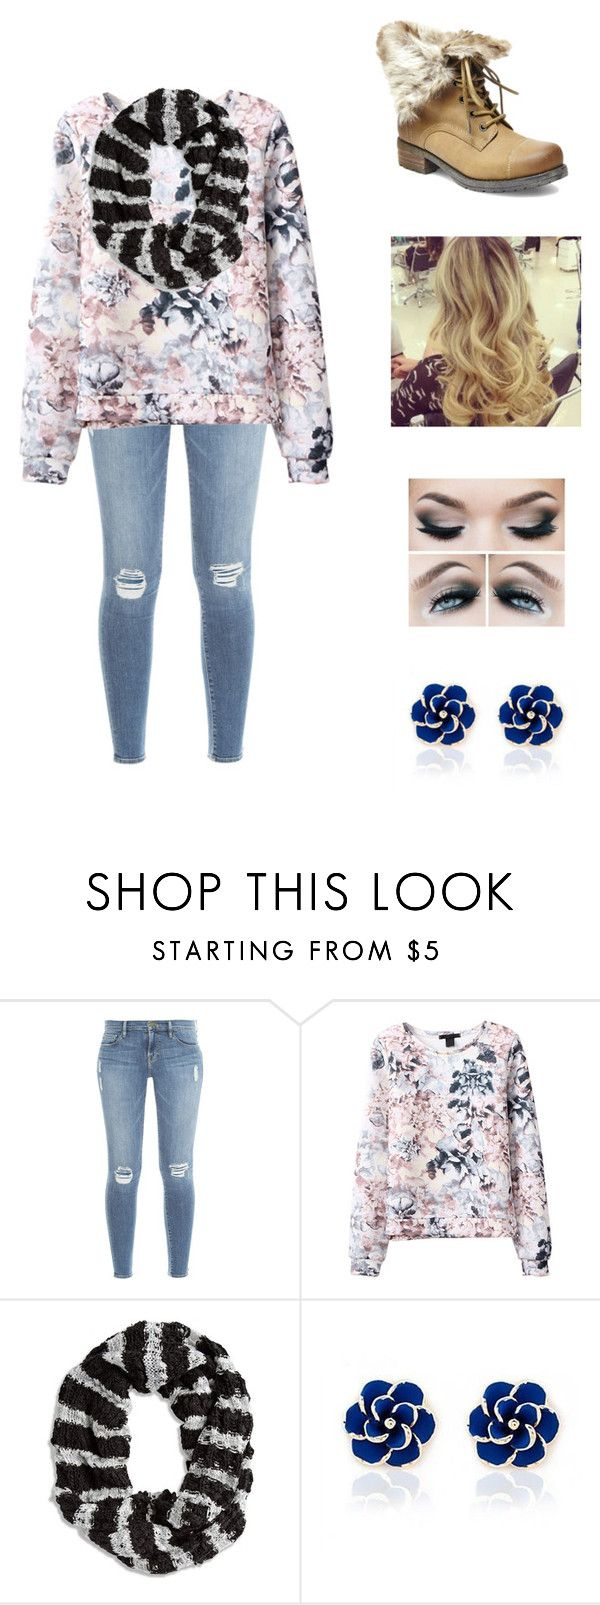 """""""Floral and striped"""" by petite-chic ❤ liked on Polyvore featuring Frame, Chico's, Ciroki and Steve Madden"""